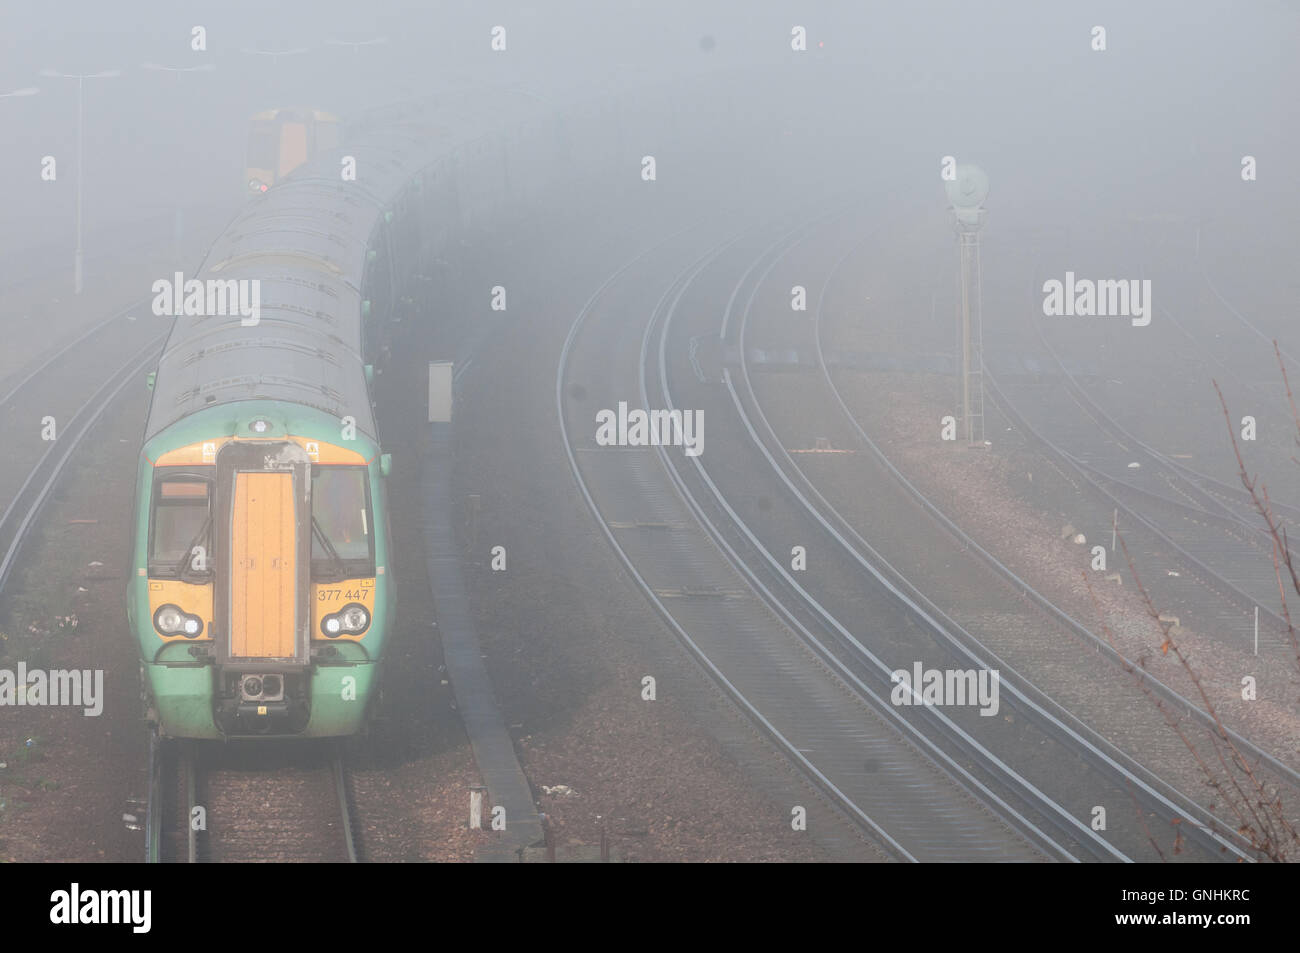 Trains struggling through a foggy morning - Stock Image